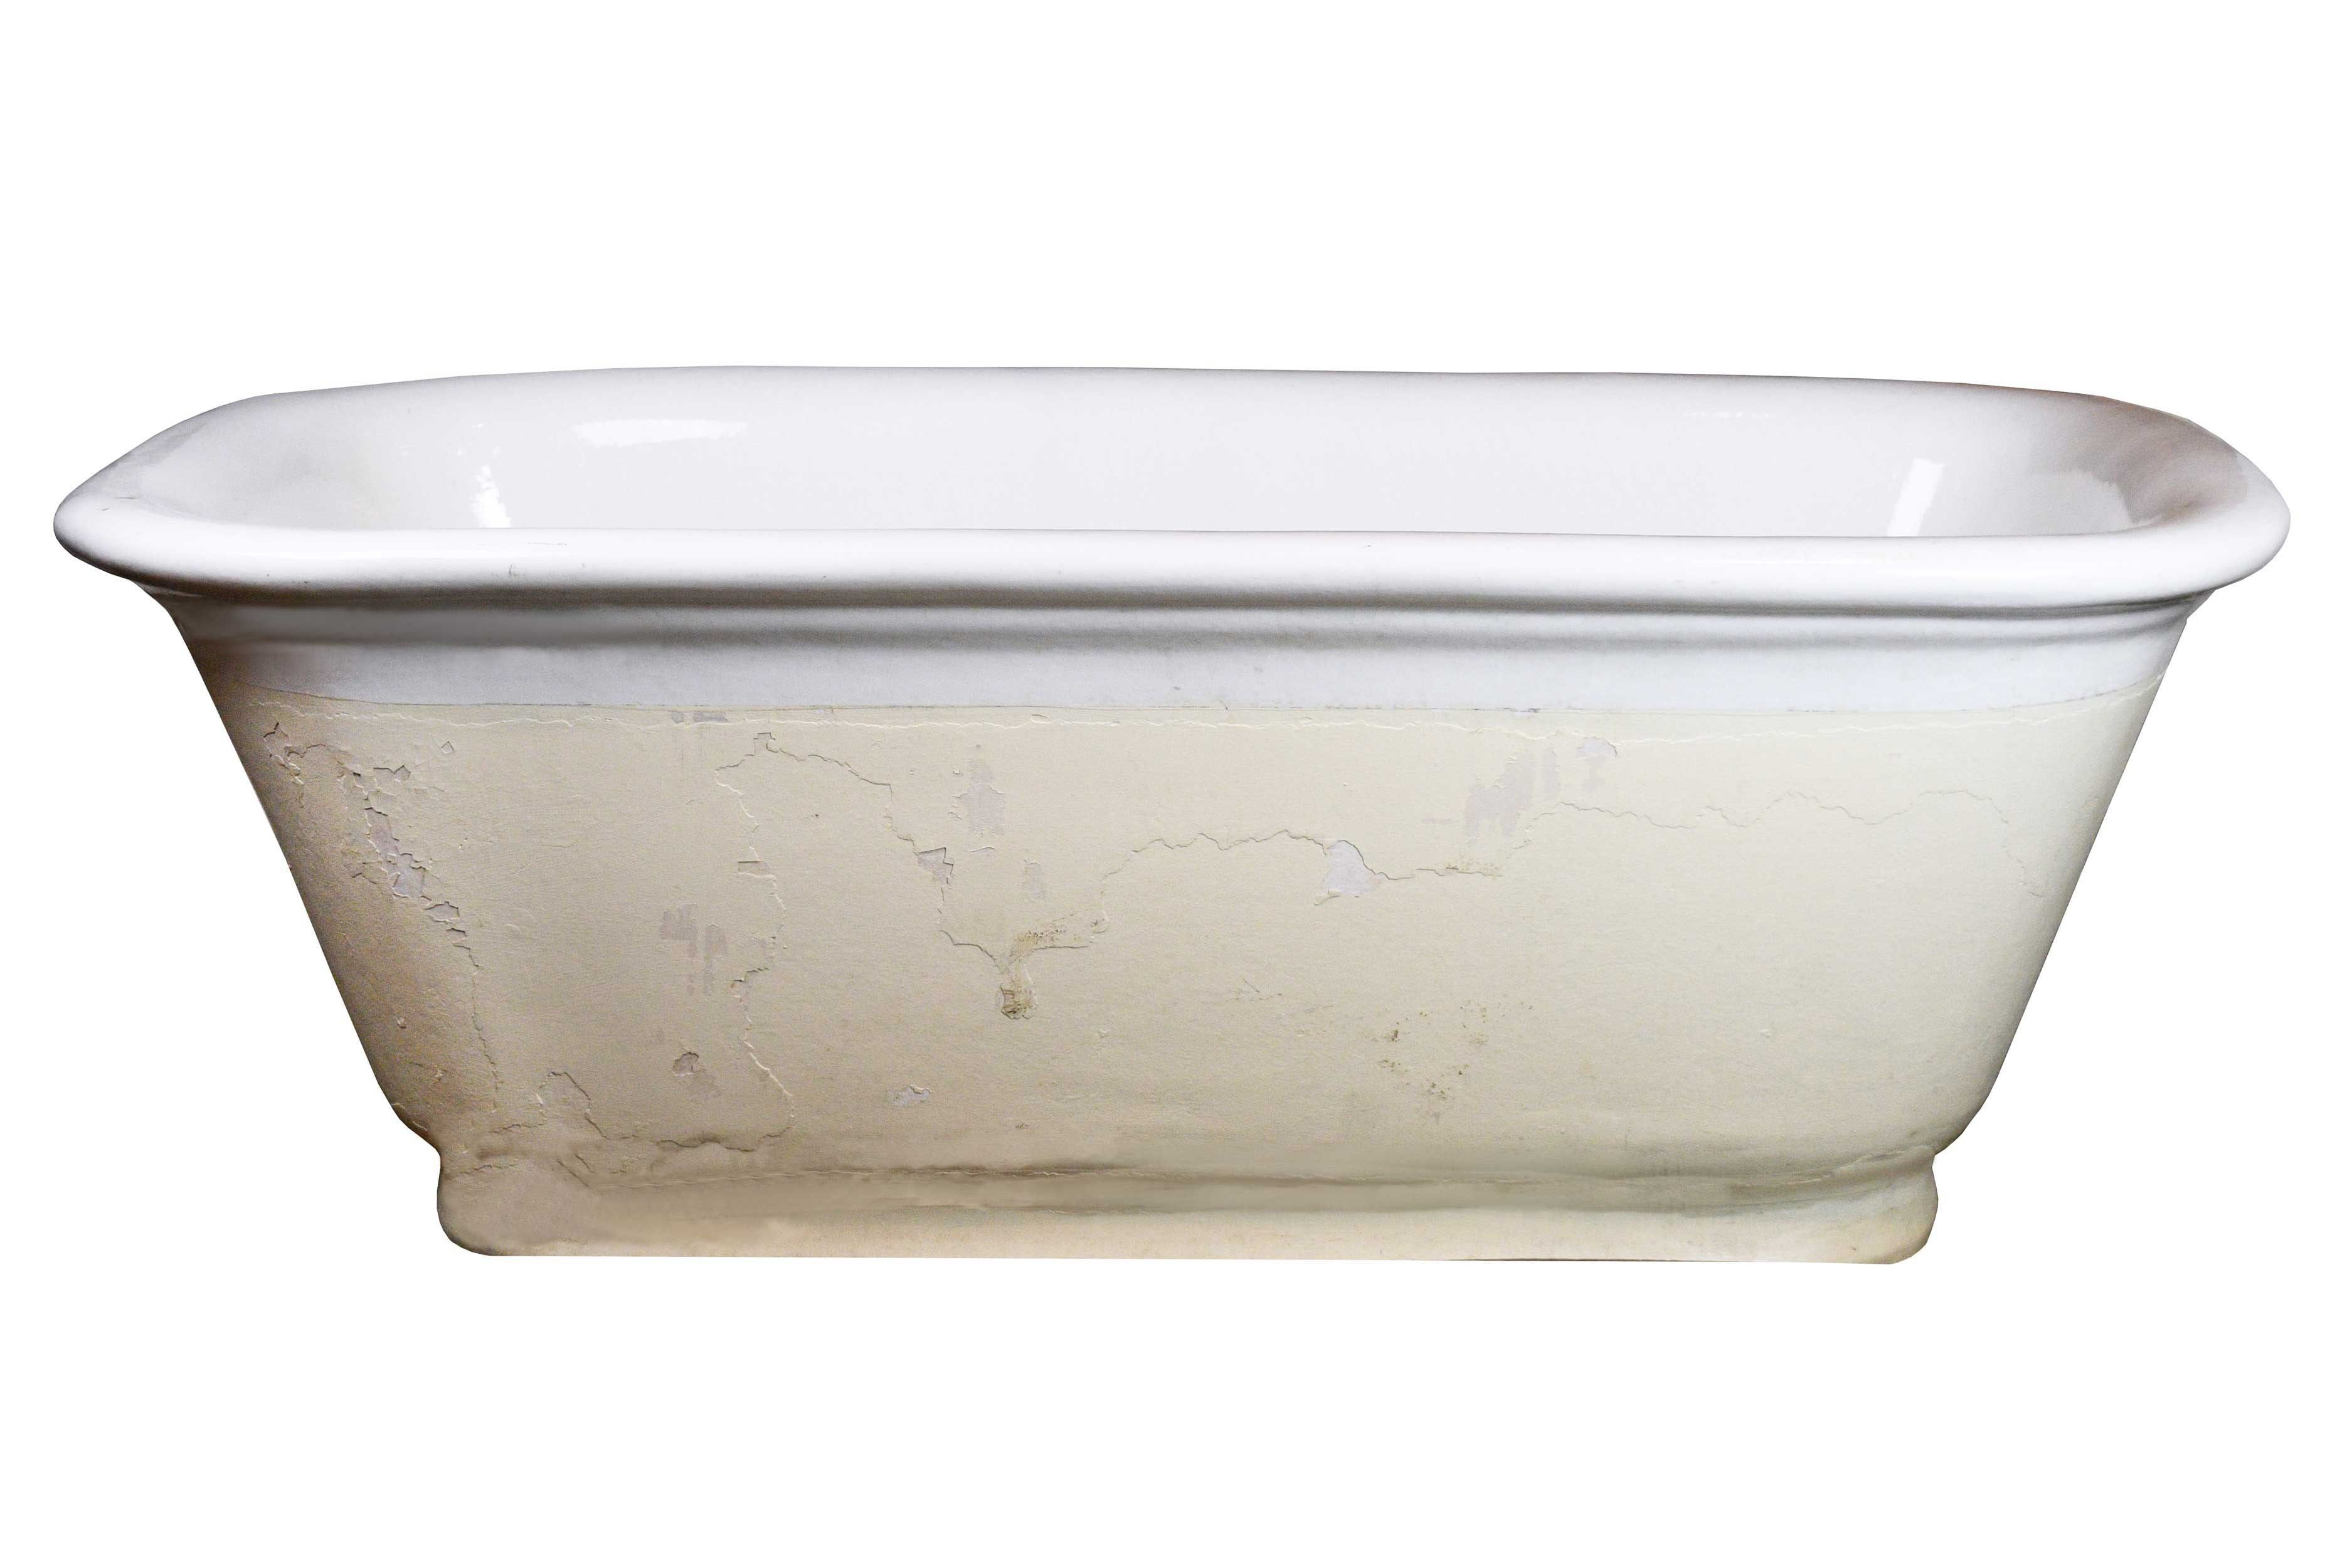 Wcobt100559bntrim 59 In Center Drain Soaking Tub In White With Brushed Nickel Soaking Bathtubs Tub Whirlpool Tub